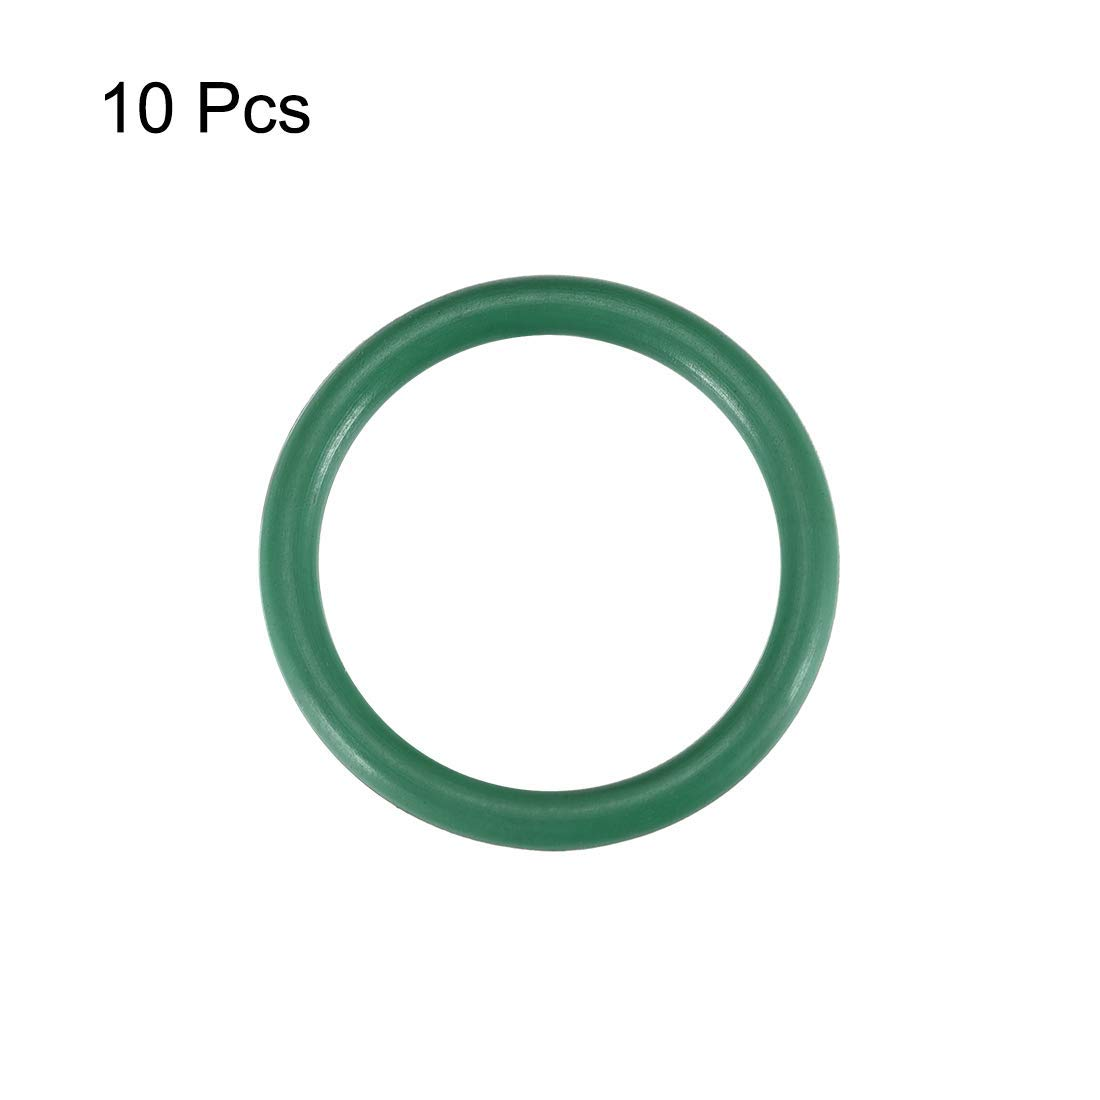 O-Rings of Fluorine Rubber Inner Diameter of 13 mm Width of 2 mm Green Seal 10 Pieces Outer Diameter of 17 mm